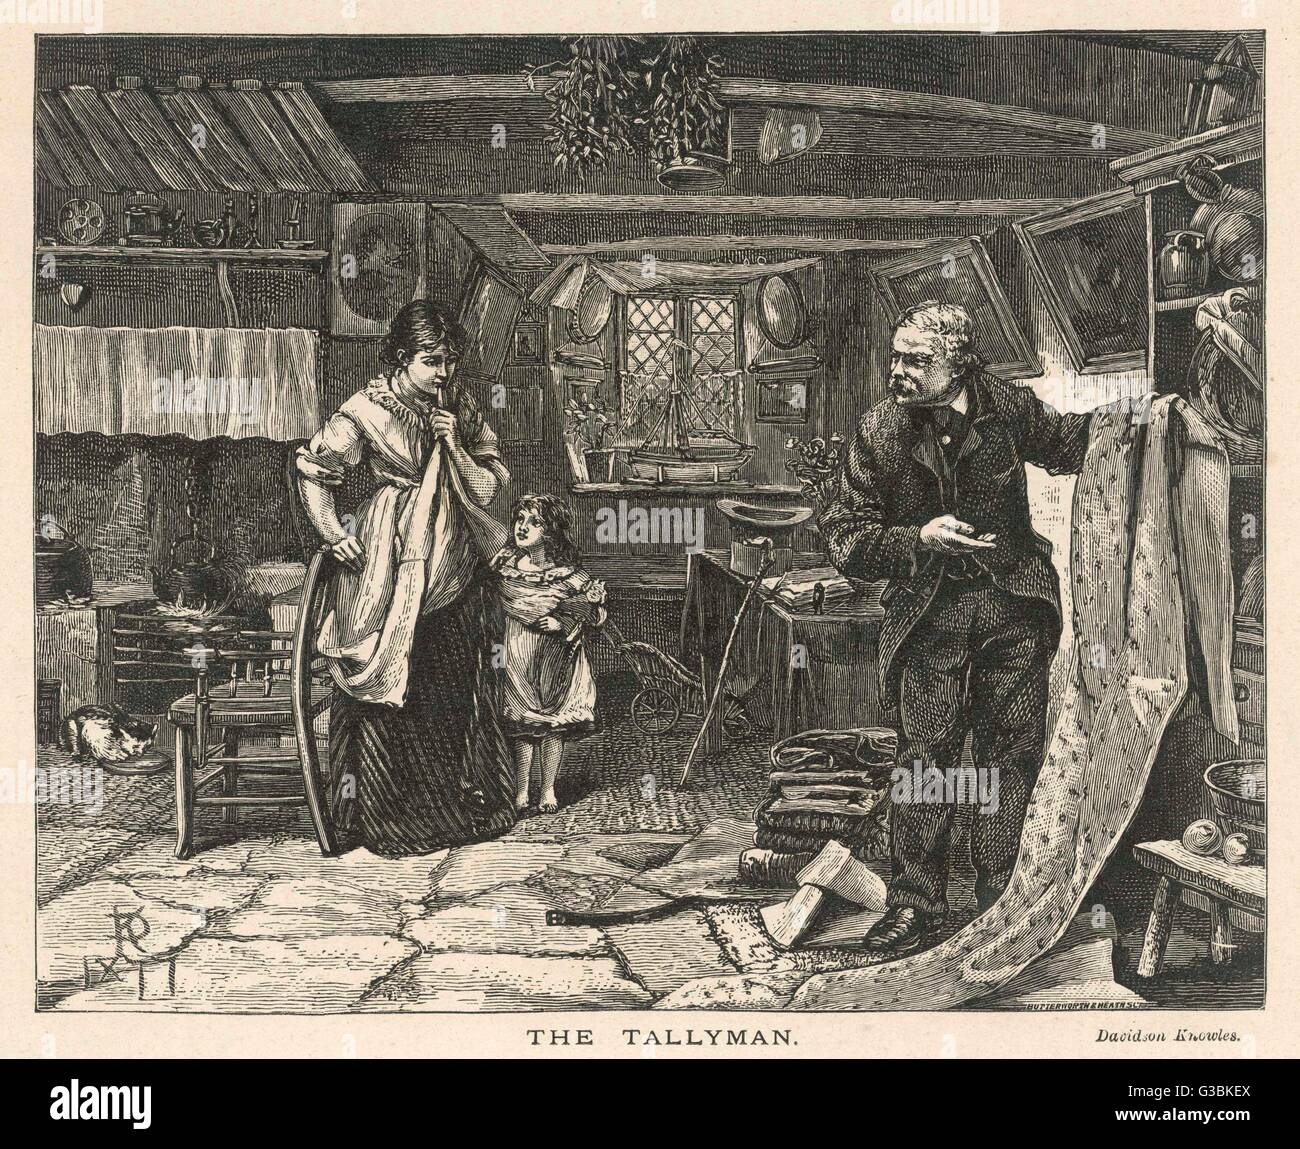 The Tallyman displays his  wares in a country cottage.        Date: 1878 - Stock Image